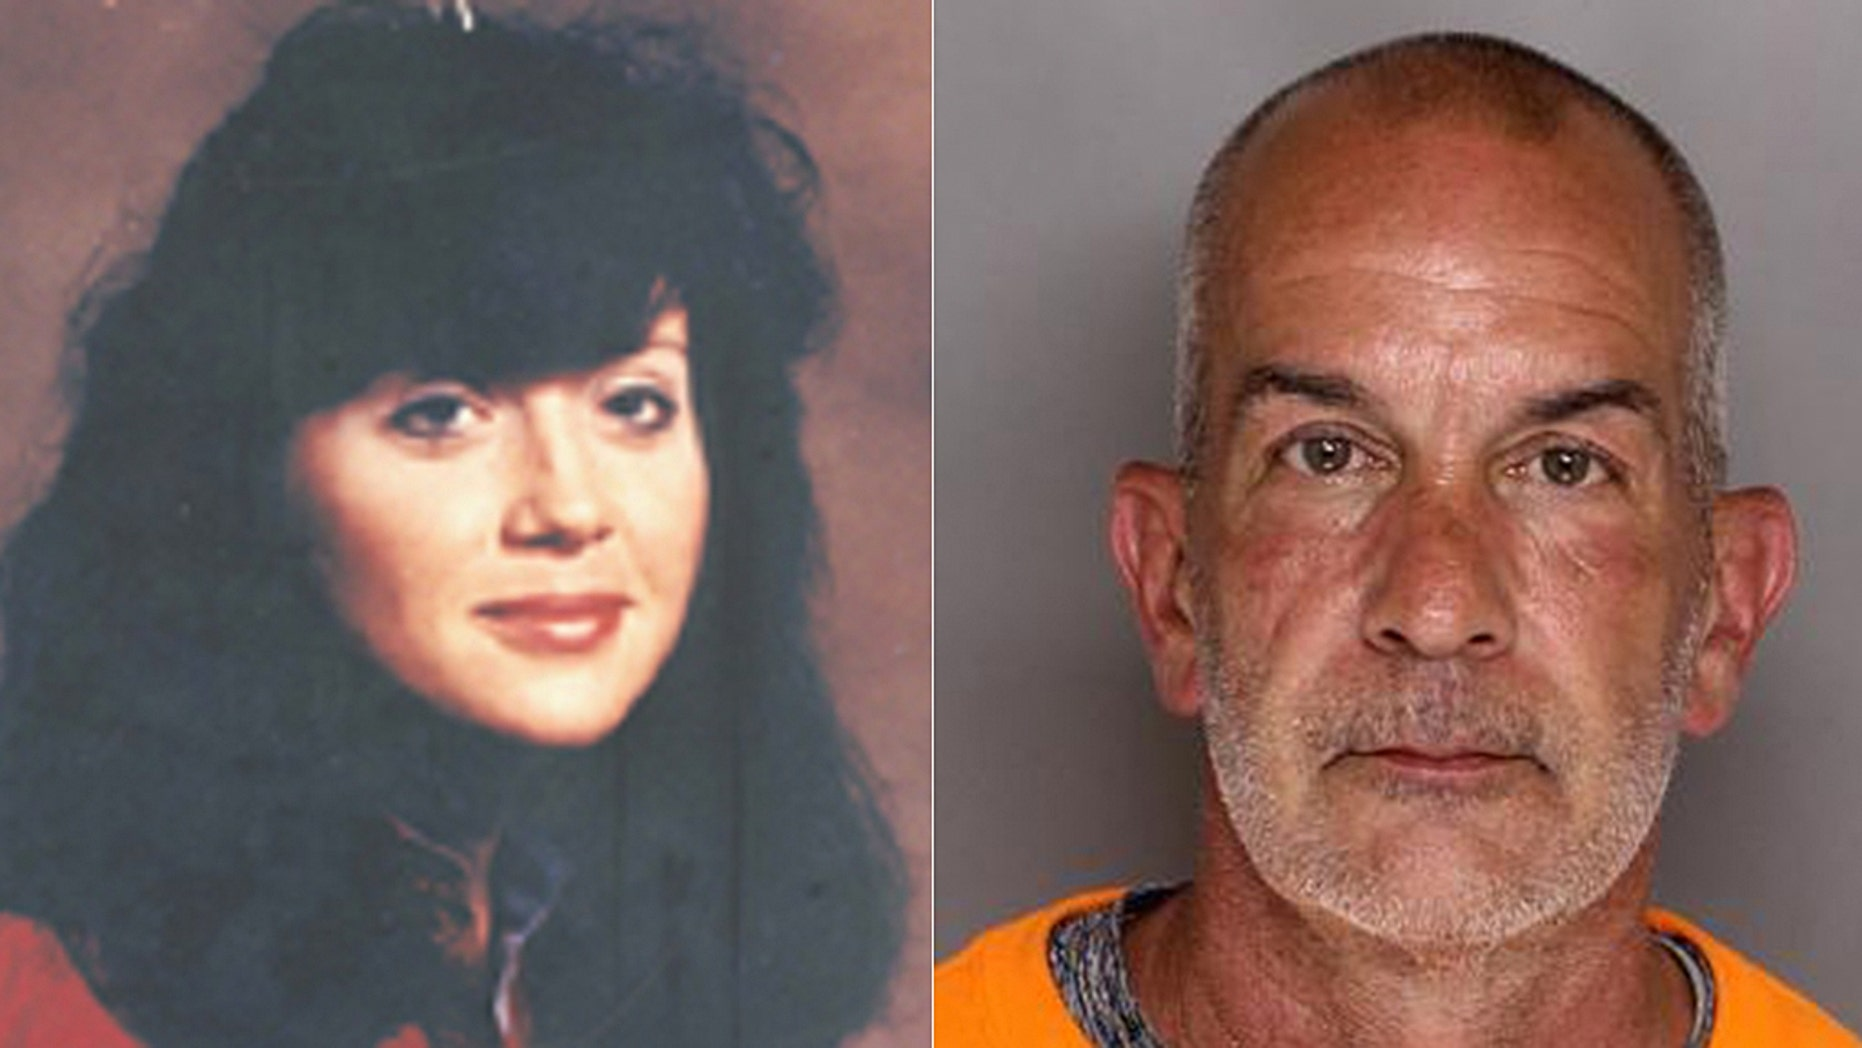 Thirty-three years after newlywed Karen Norton, 23, was killed in her home in an apparent burglary, cold case detectives in Maryland have charged her husband John Norton, 57, with the murder.